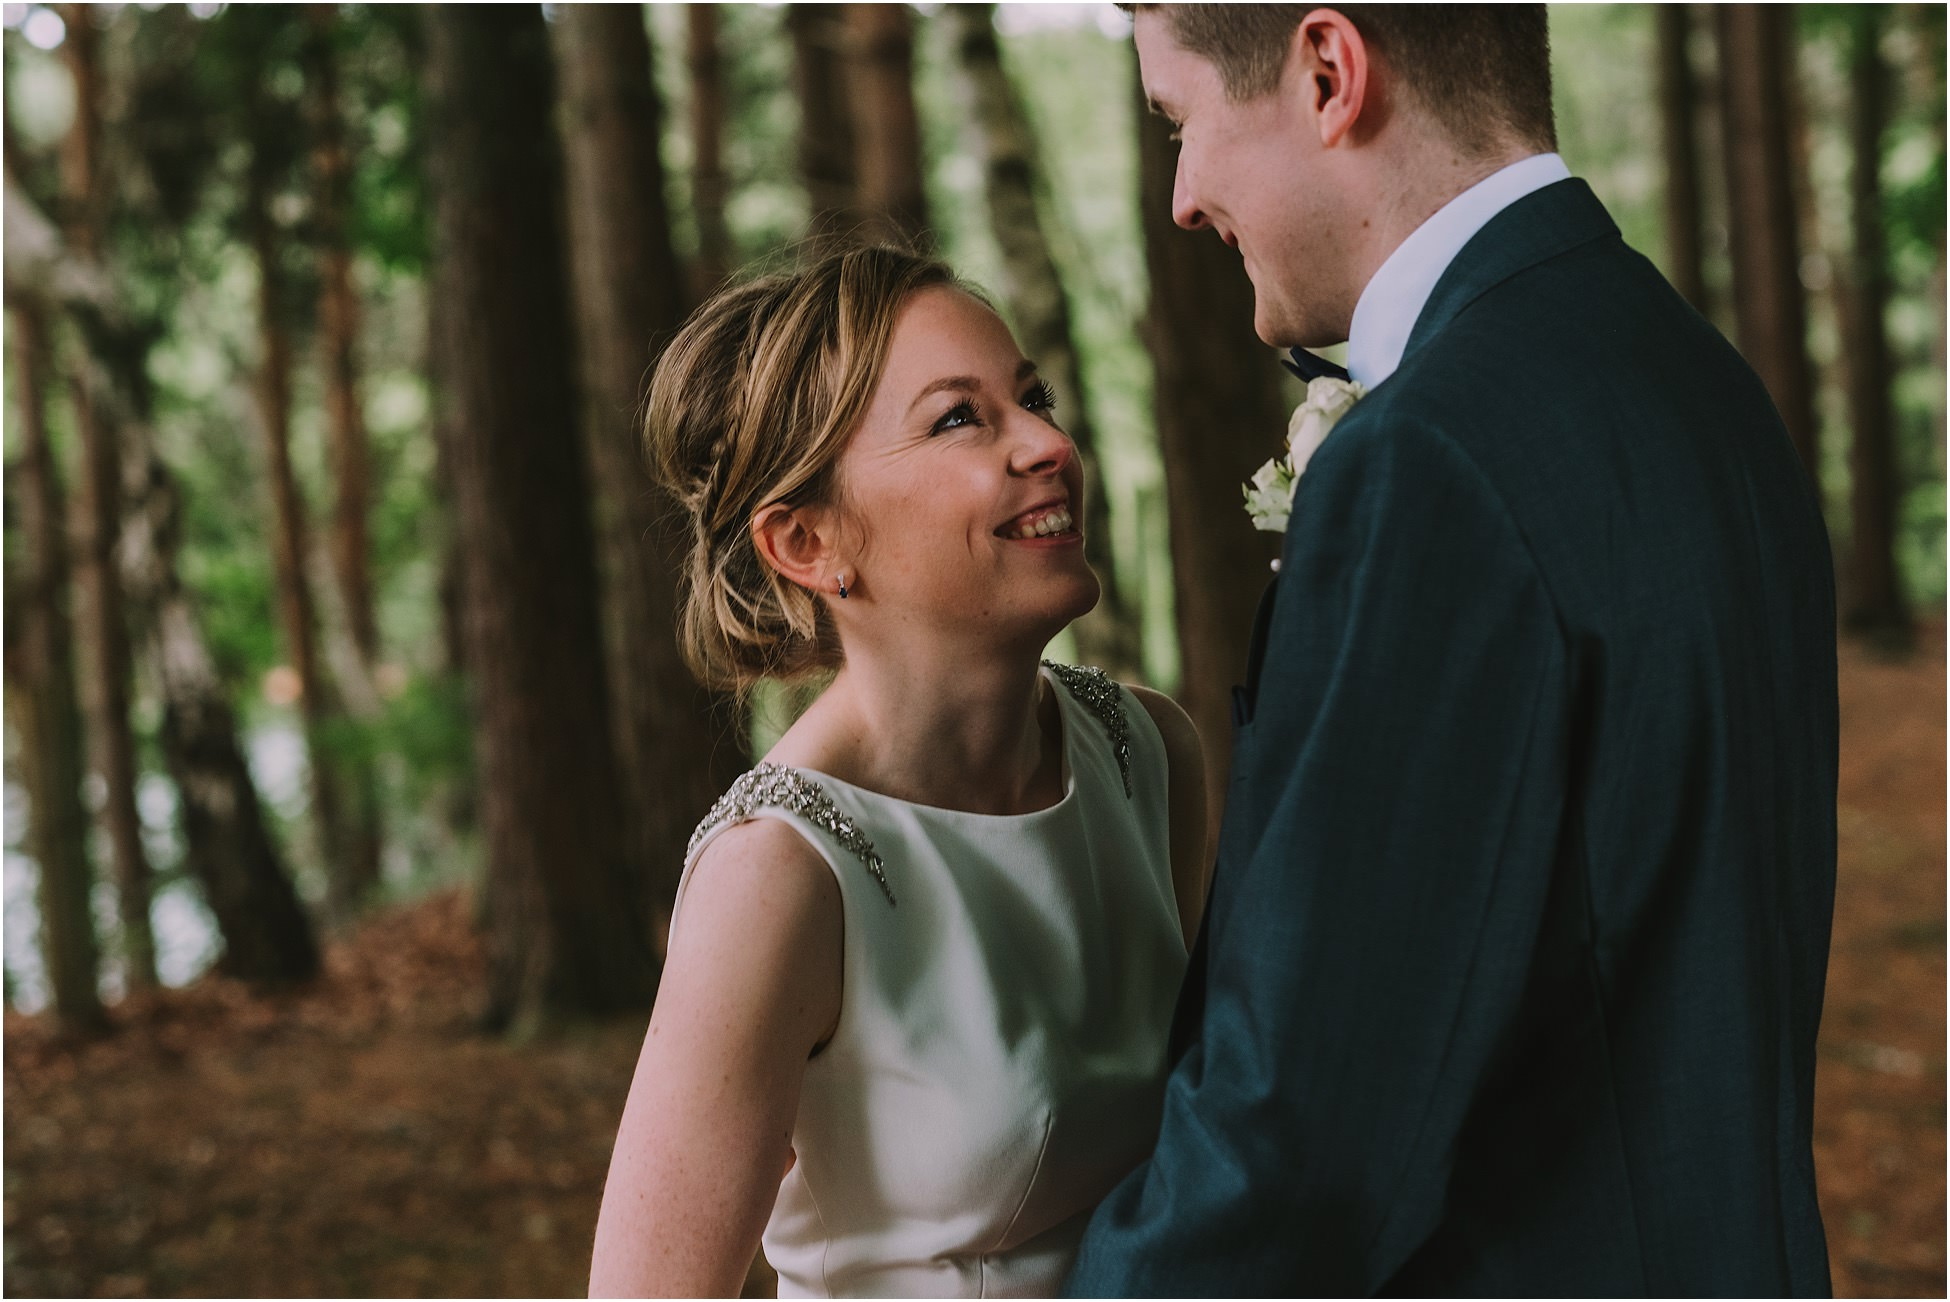 A portrait of the bride and groom at their Nunsmere Hall wedding